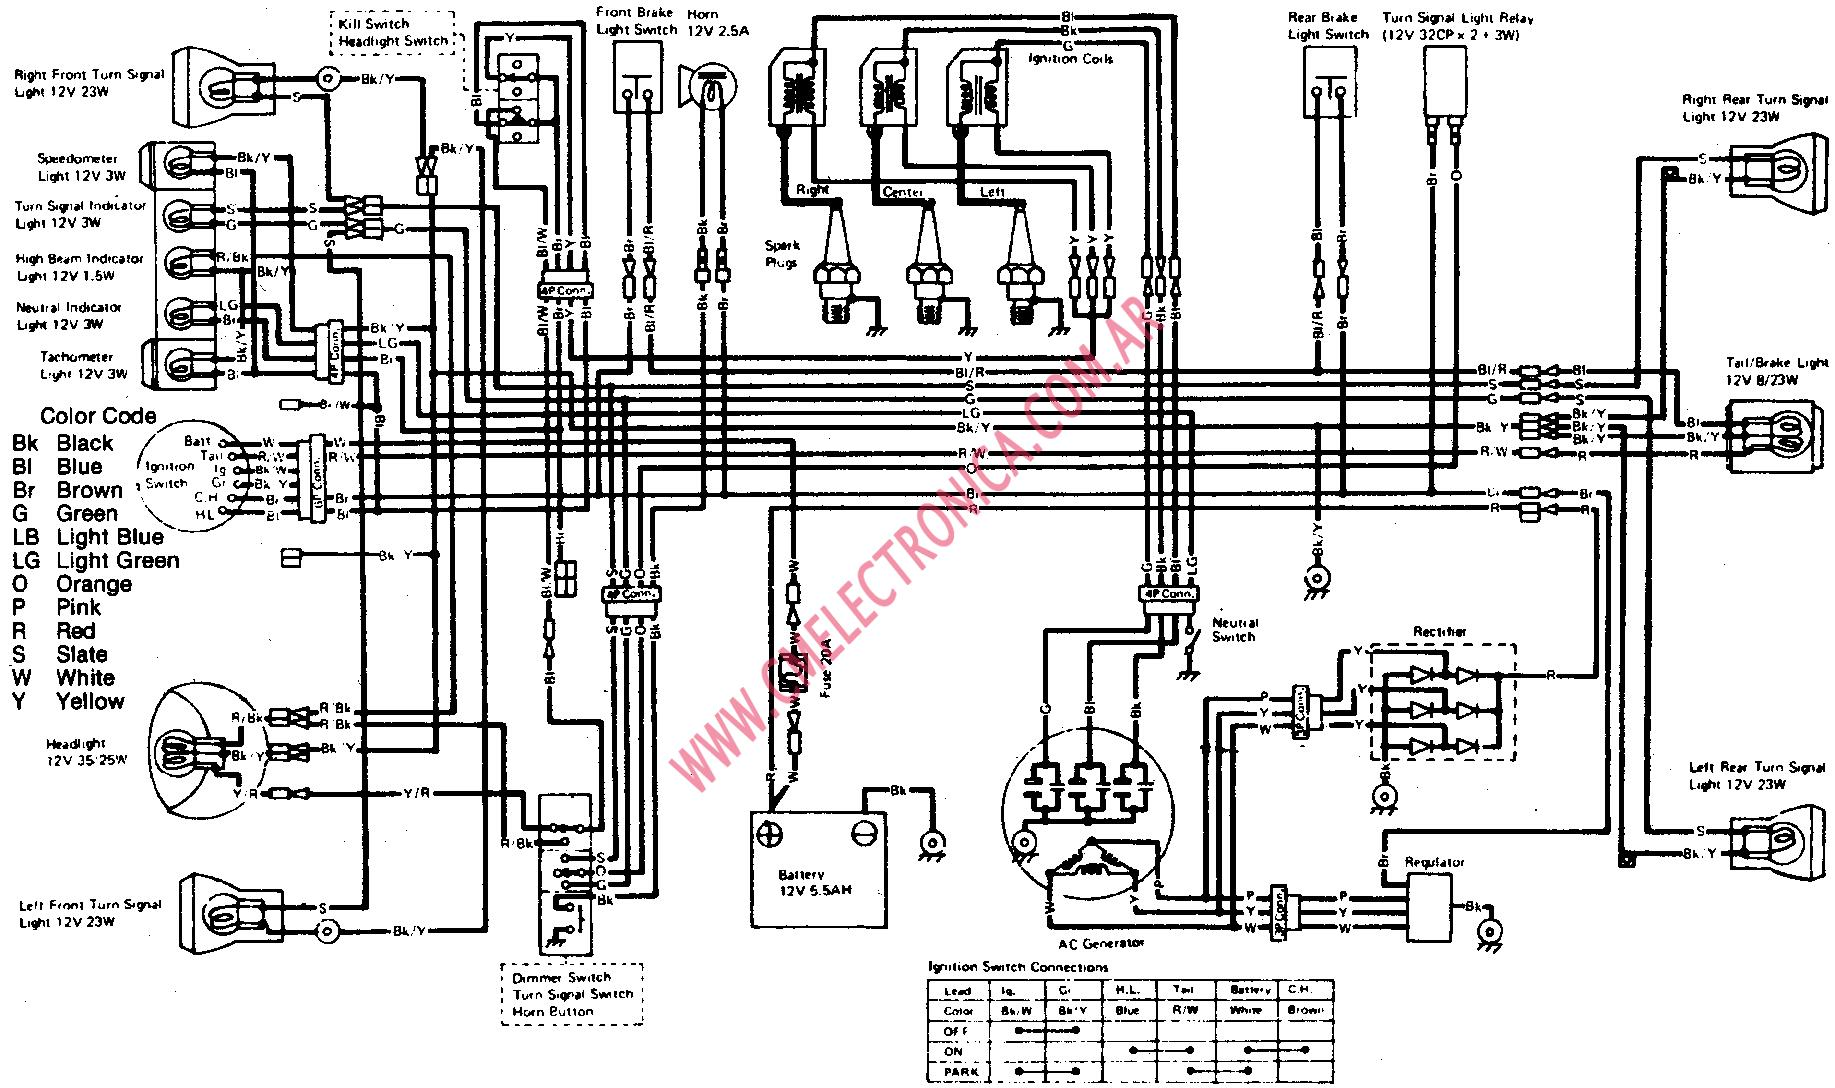 DY_4939] Kawasaki Bayou 220 Wiring Harness Free Download Diagram Download  DiagramStaix Usnes Ling Props Chim Cular Puti Onica Gue45 Sapebe Mohammedshrine  Librar Wiring 101